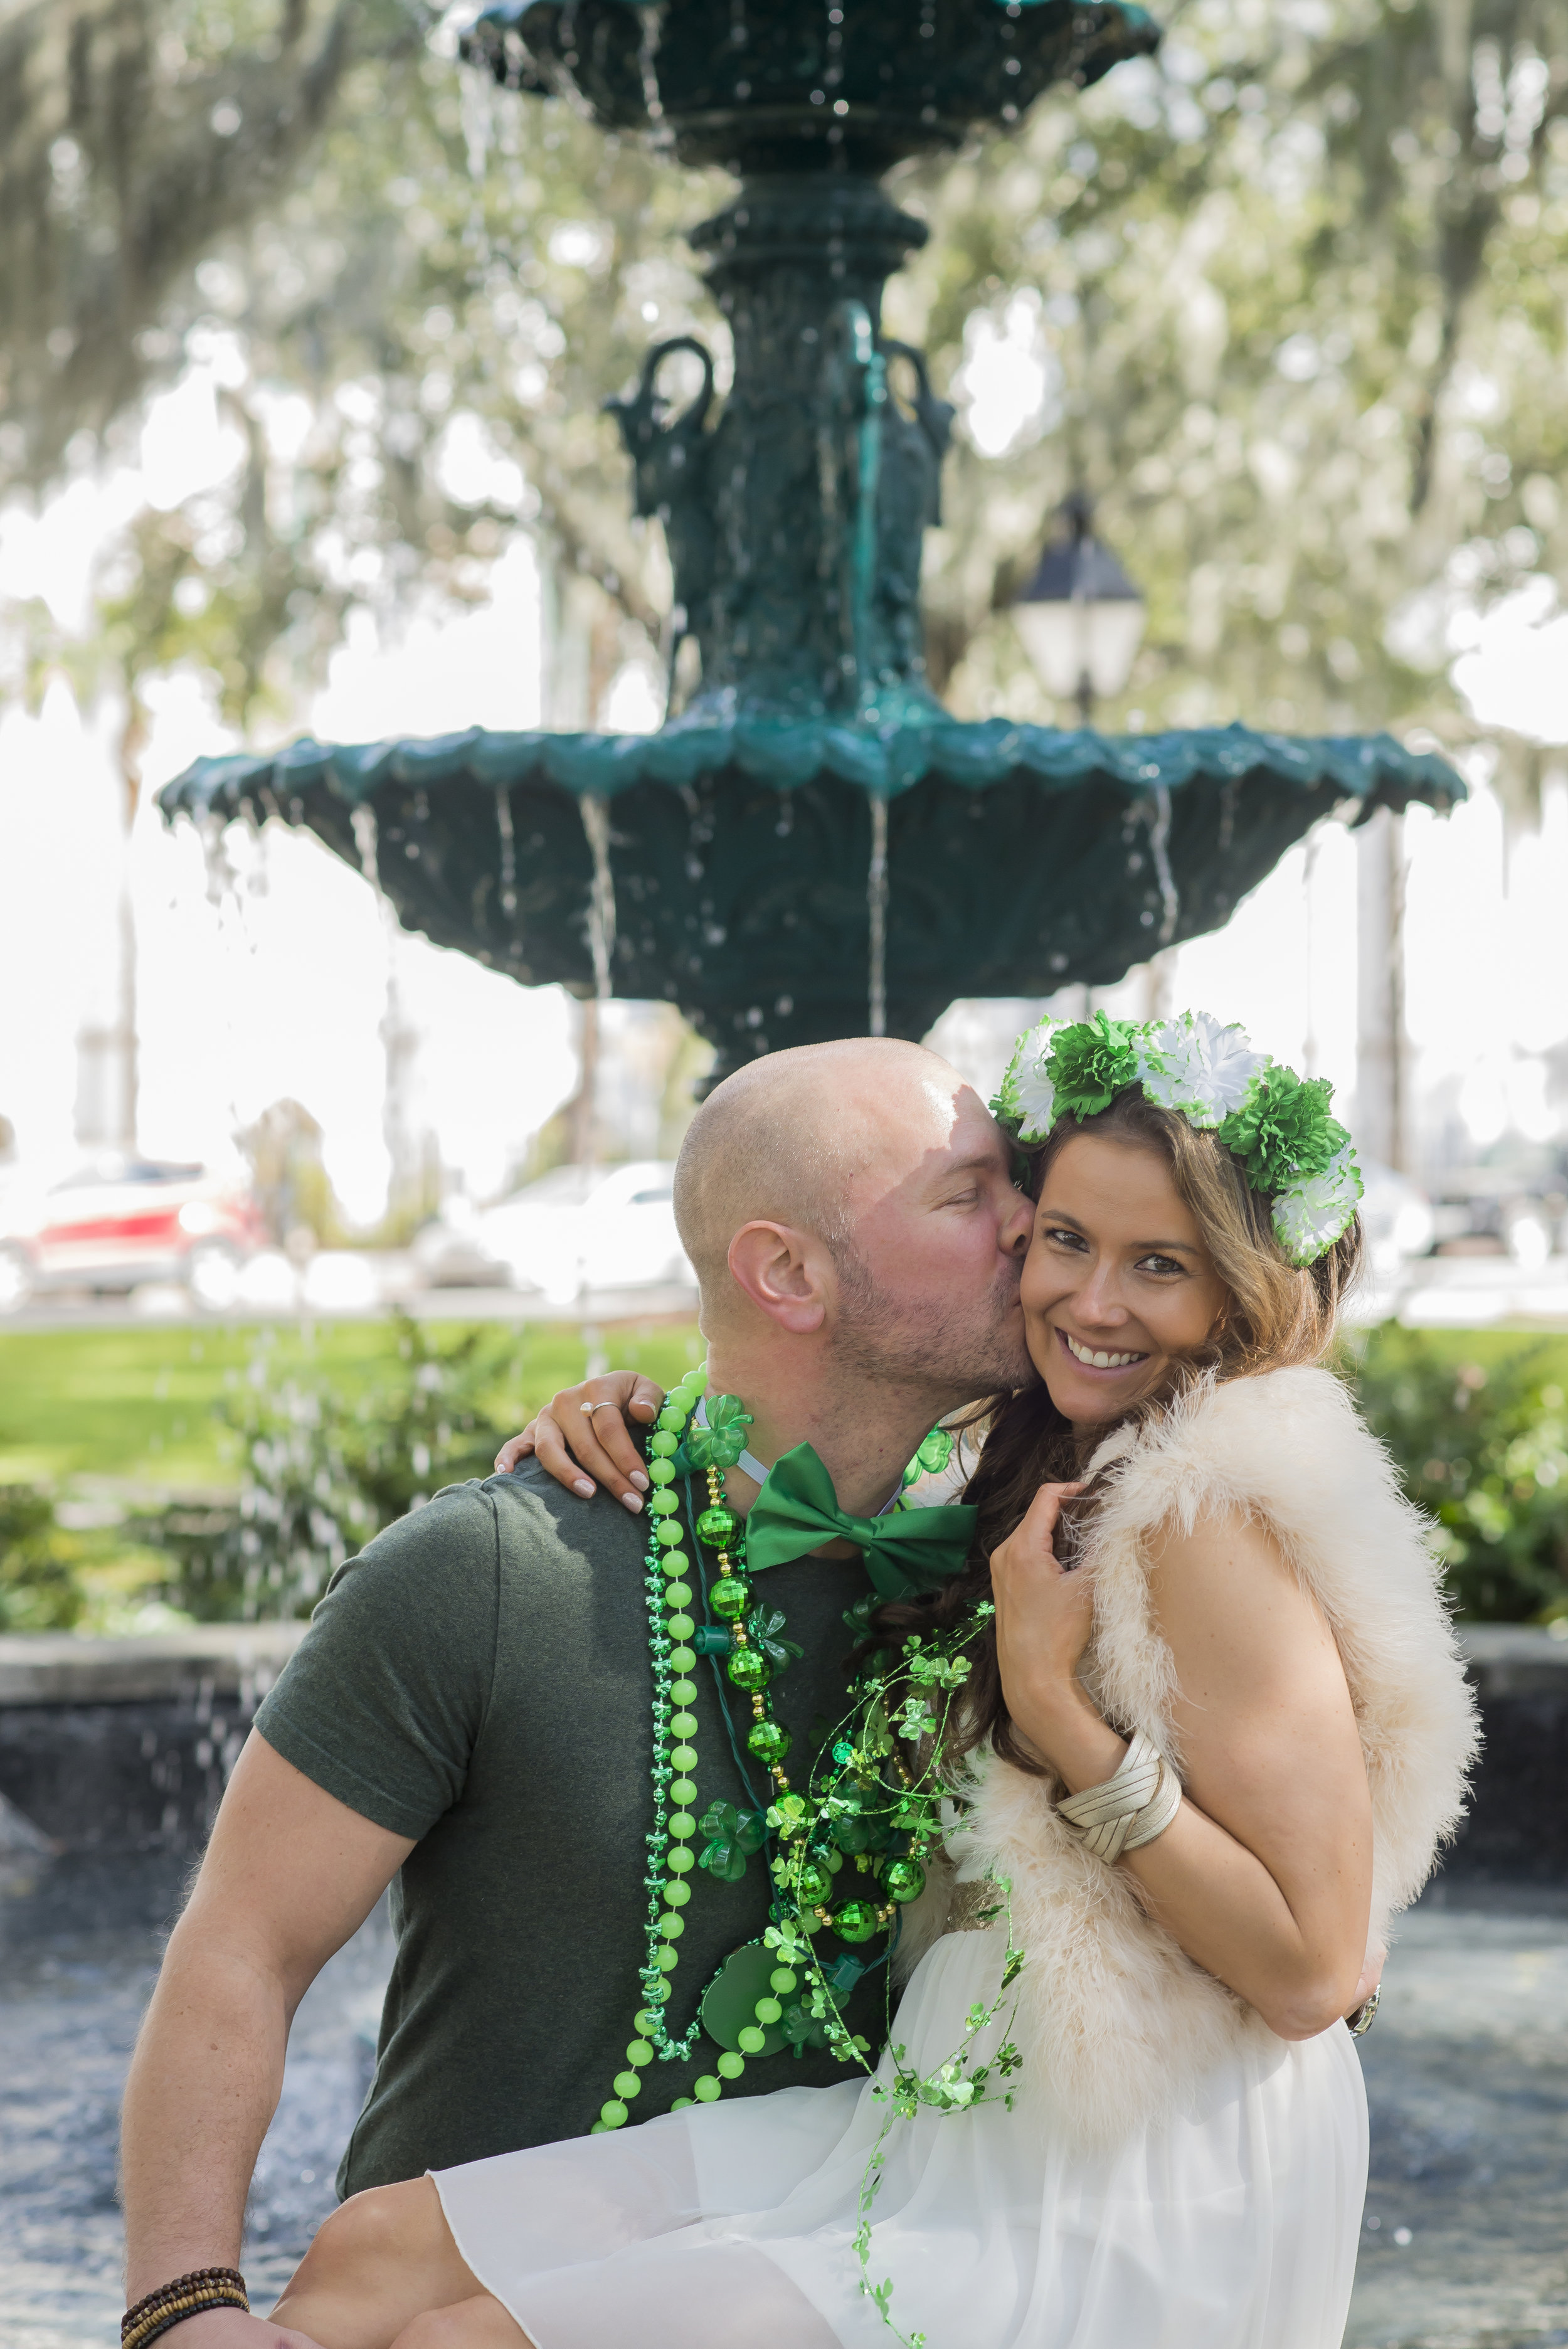 T.C. & Brenna Michaels dressed for St. Patrick's Day